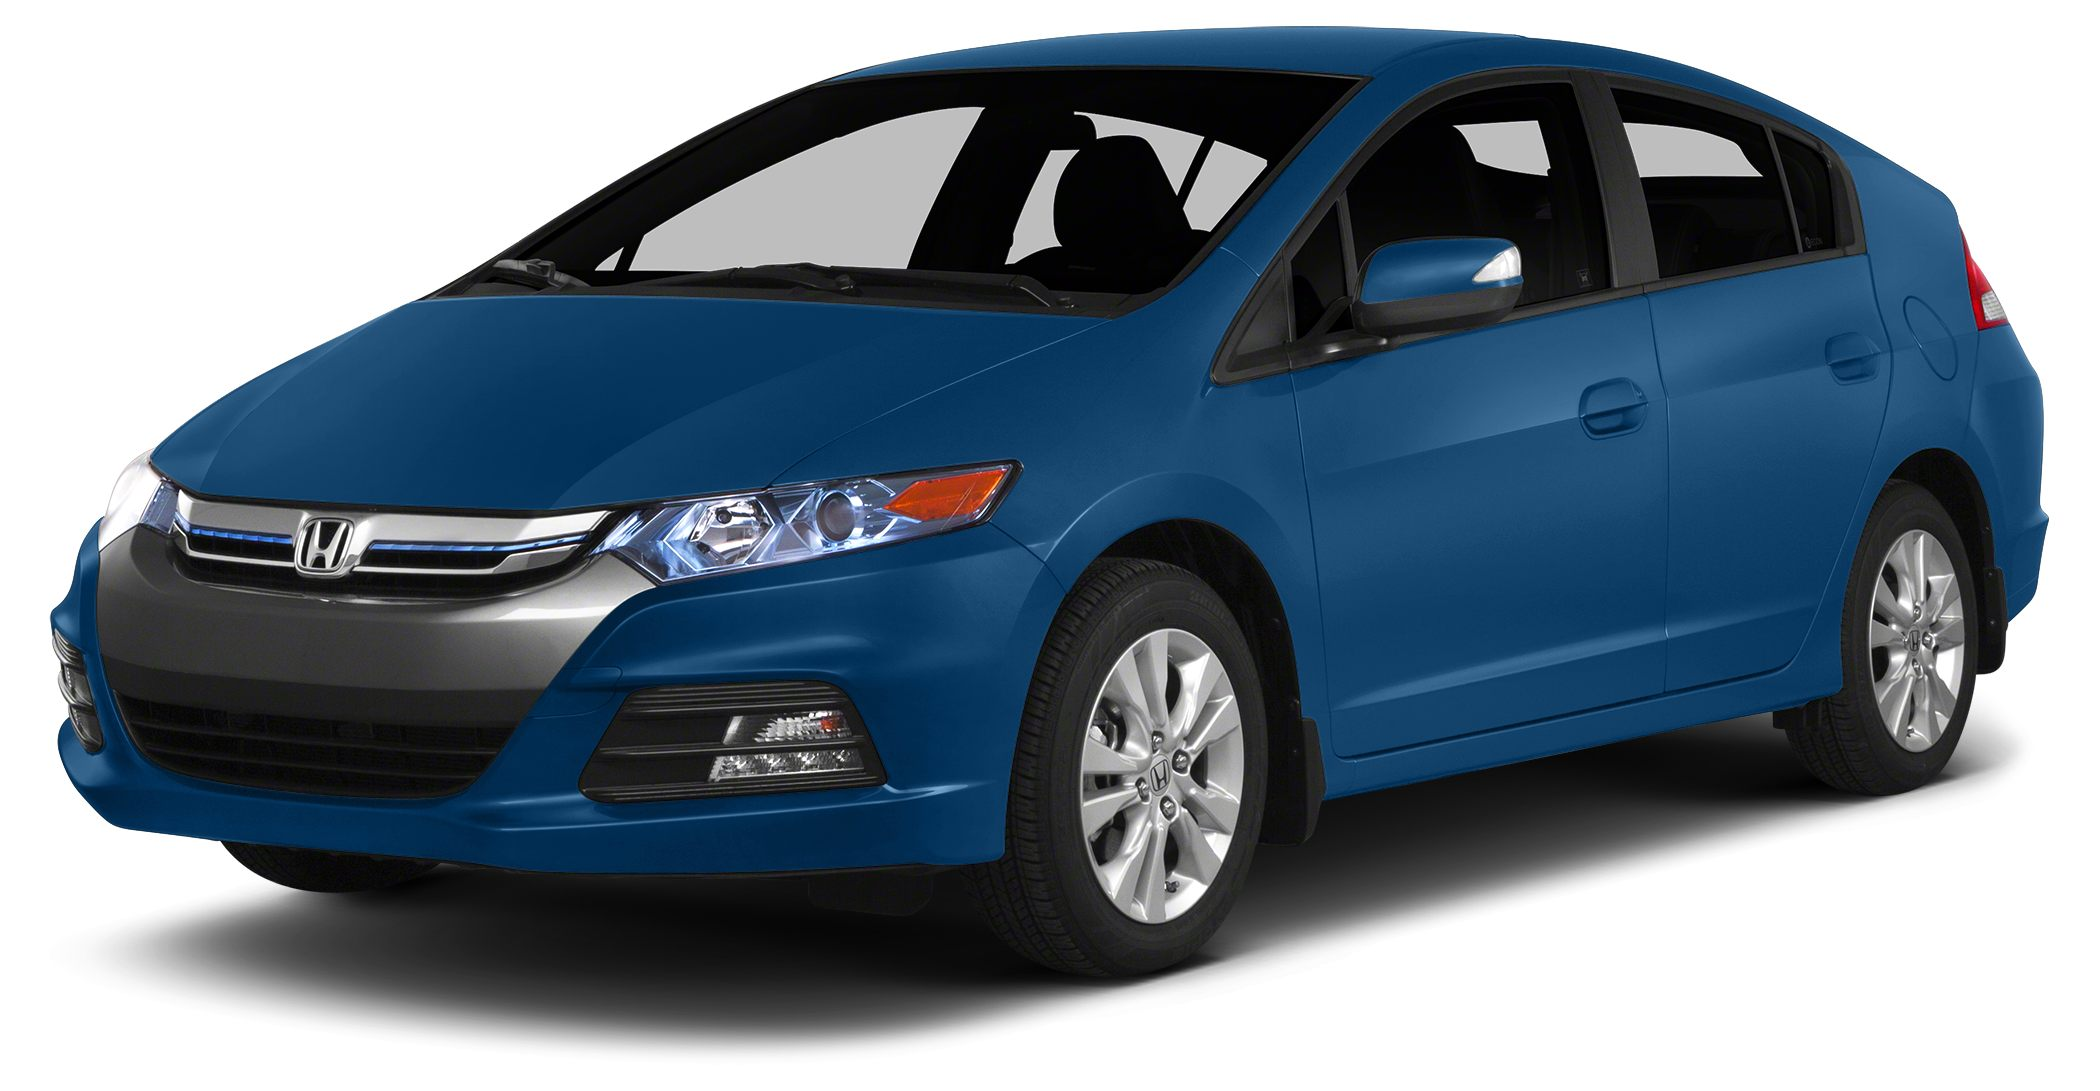 2013 Honda Insight EX Land a deal on this 2013 Honda Insight EX before someone else takes it home